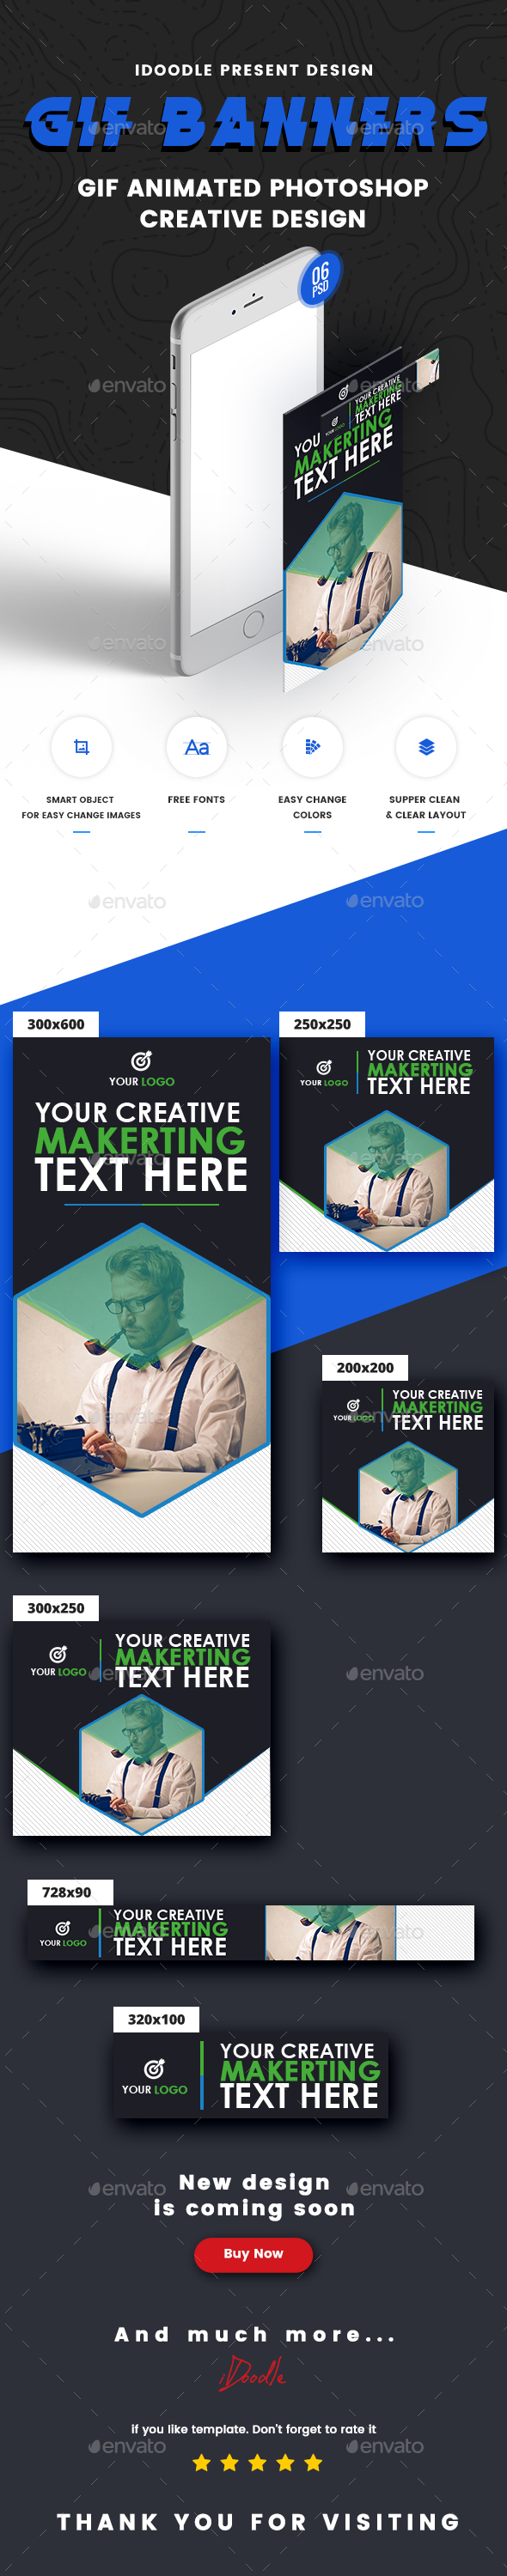 Animated GIF Multipurpose Banner Ad - Banners & Ads Web Elements